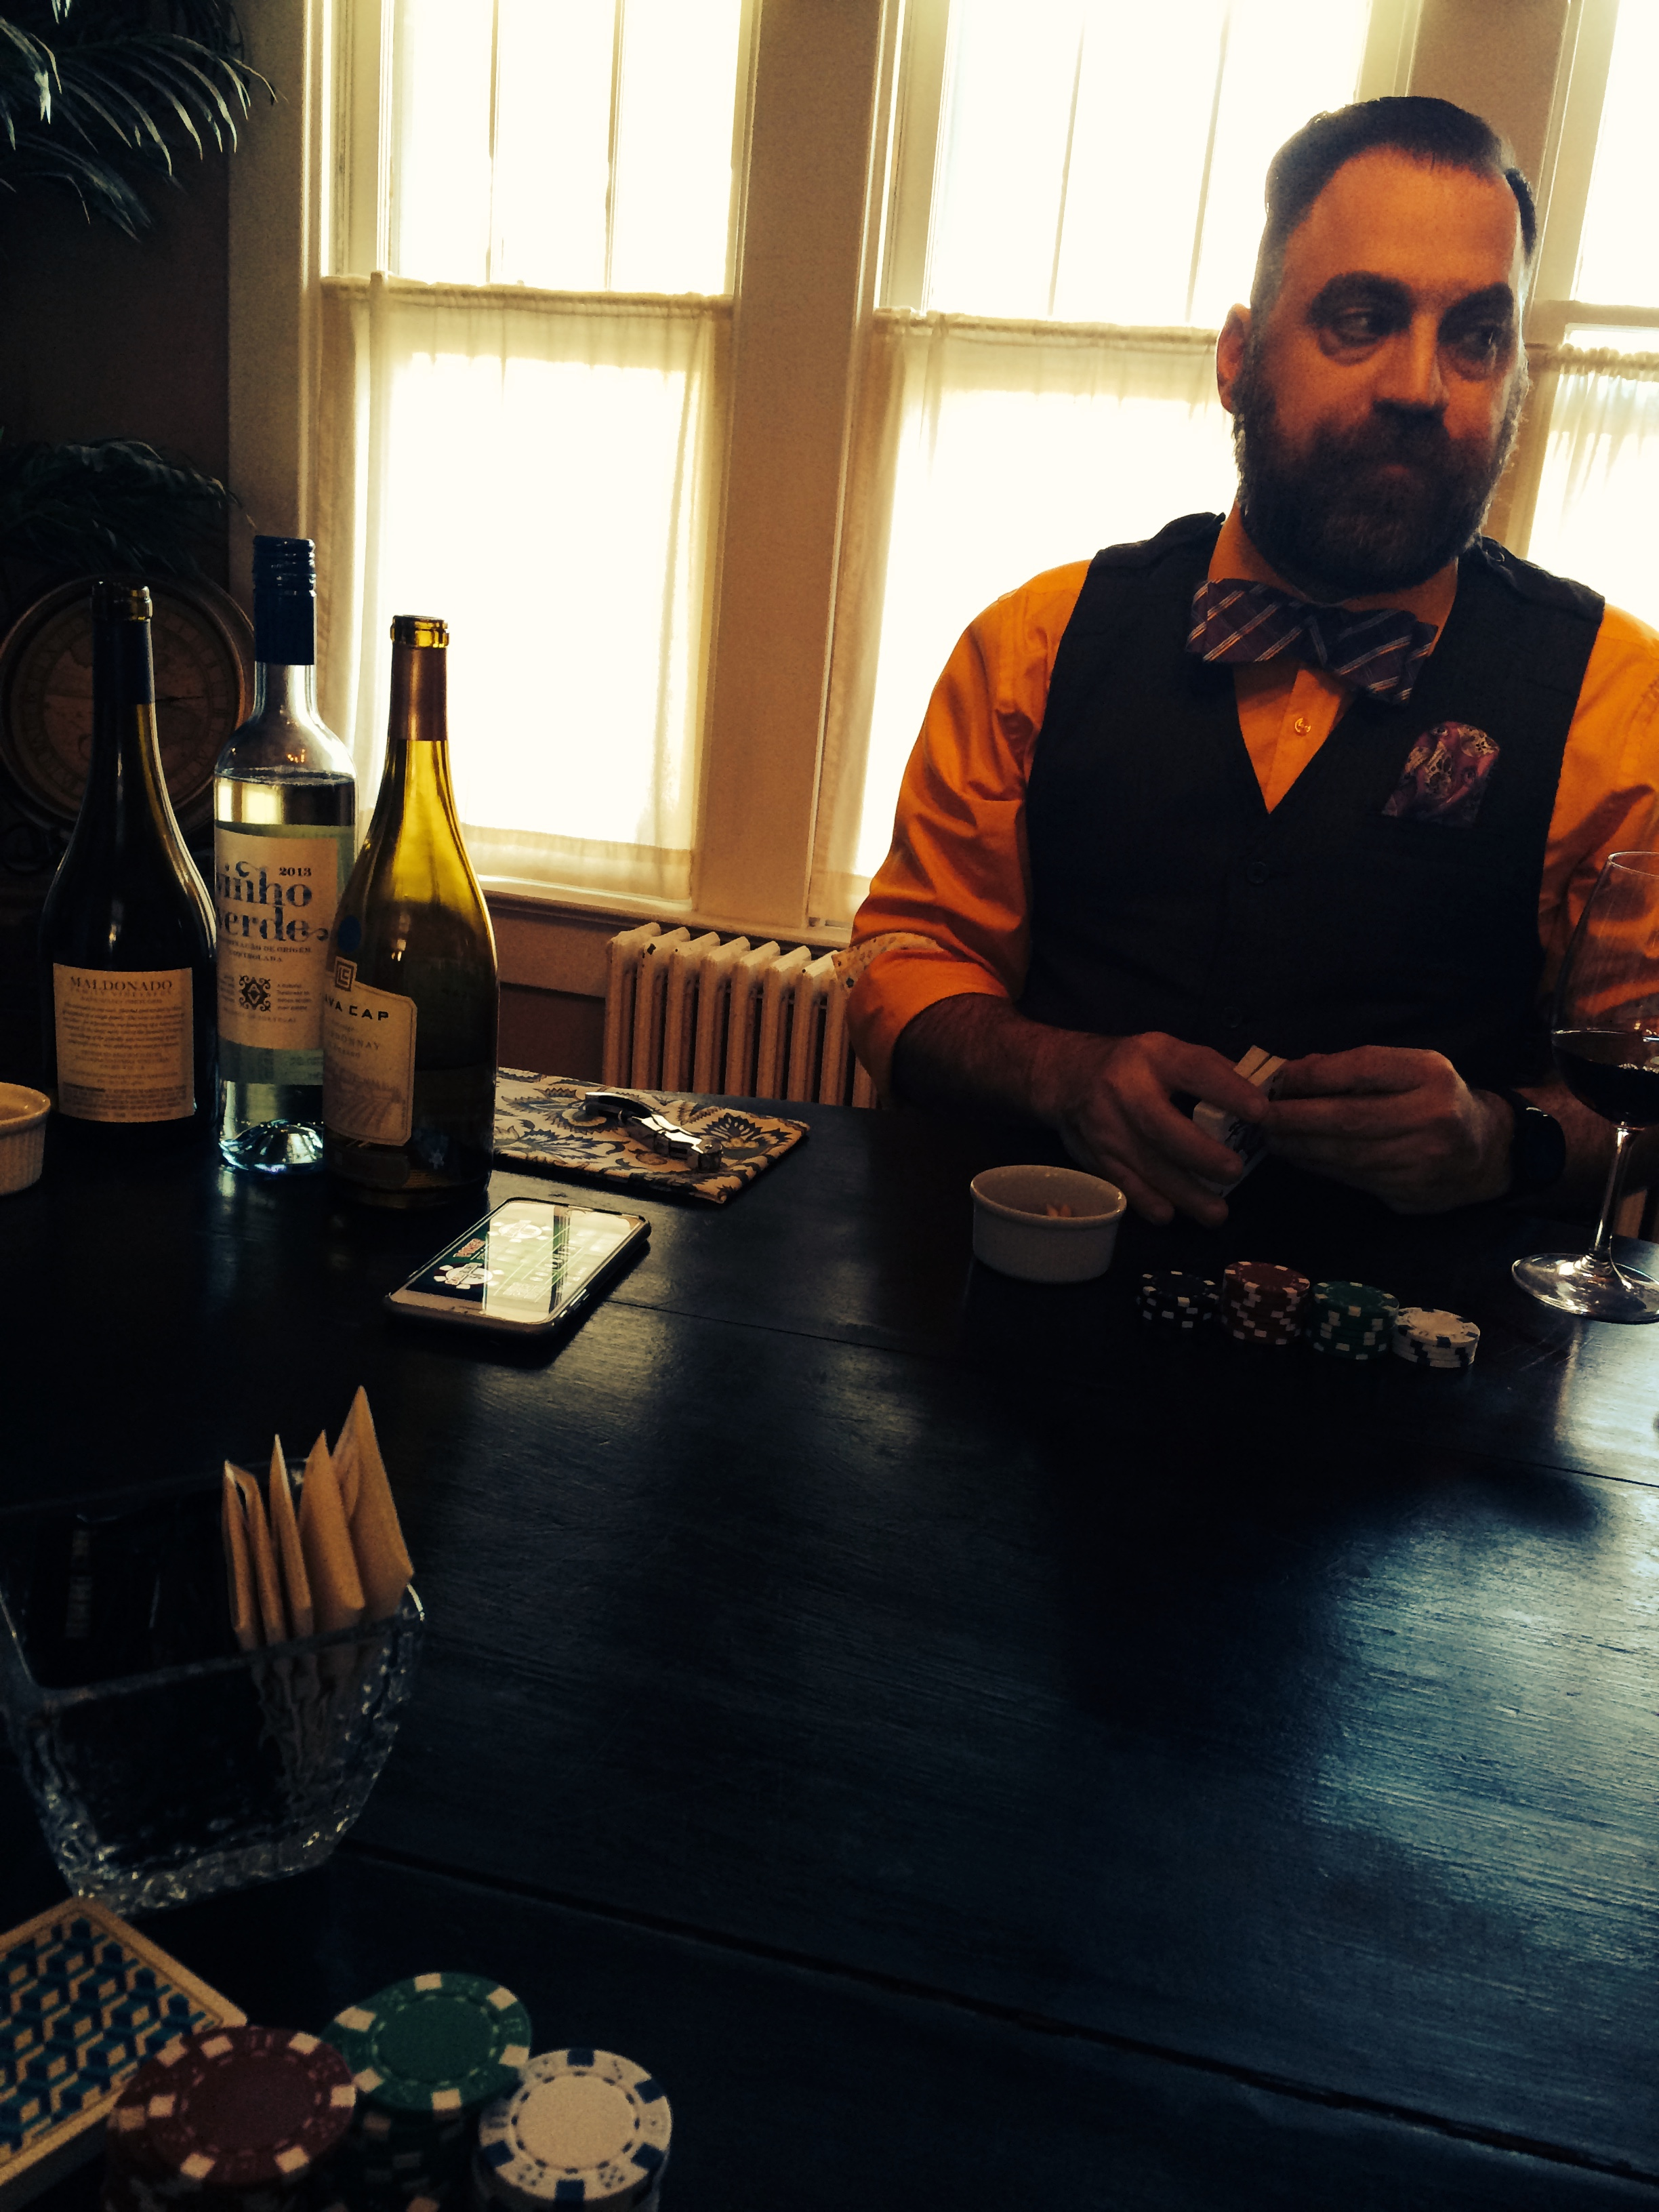 Join Alice and Eric (pictured here playing poker, drinking other wine, true, but always having fun) for complementary tastes of Pence during your dinner on Friday April 3rd.